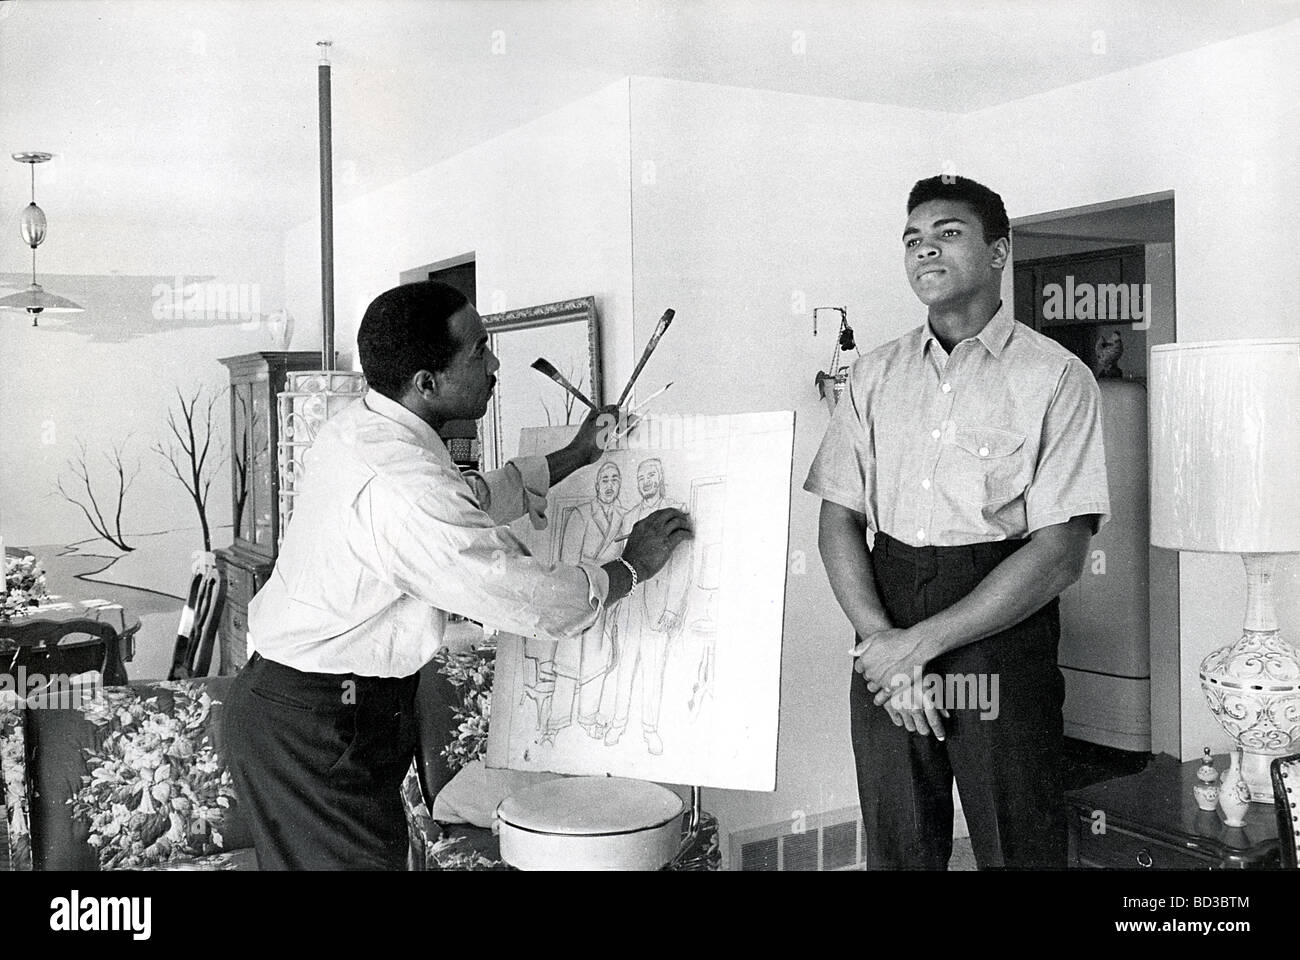 MUHAMMAD ALI  is sketched by his father Cassius,a commercial artist, at their home in Louiseville Kentucky, about - Stock Image